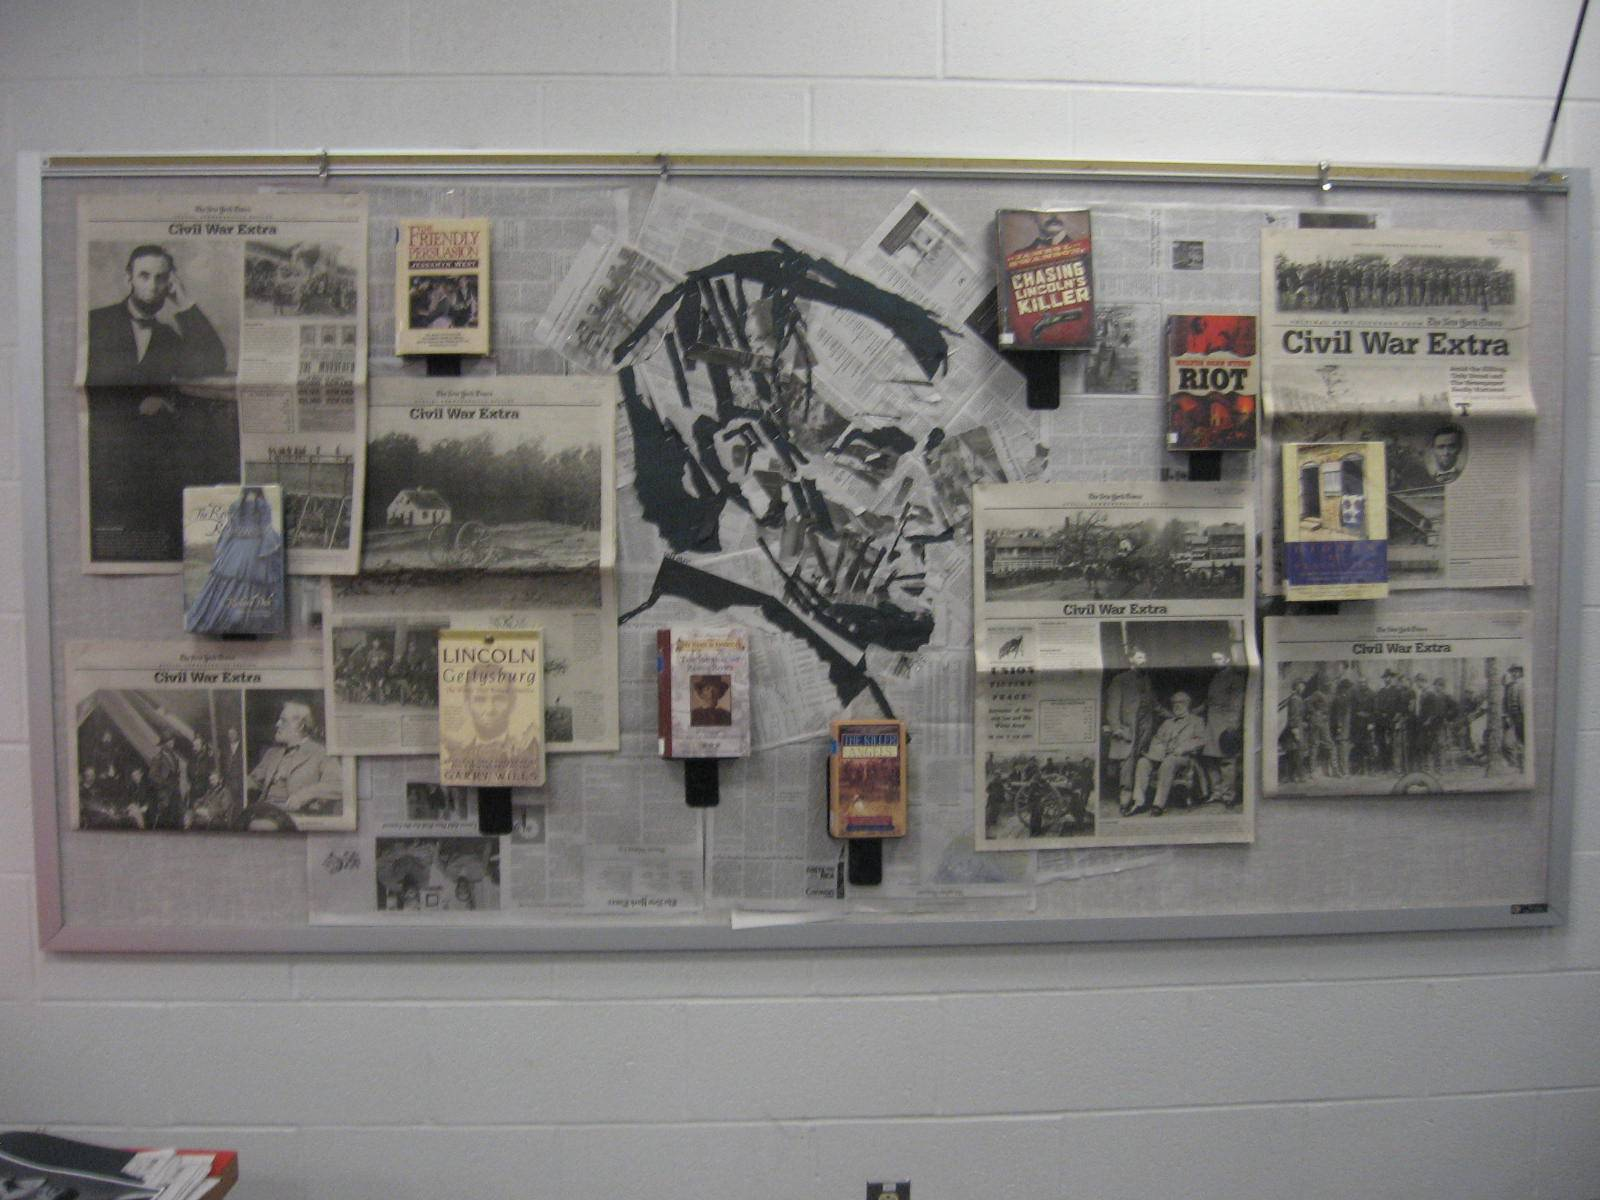 All things Lincoln: books, facsimile newspapers, cut-paper portrait.